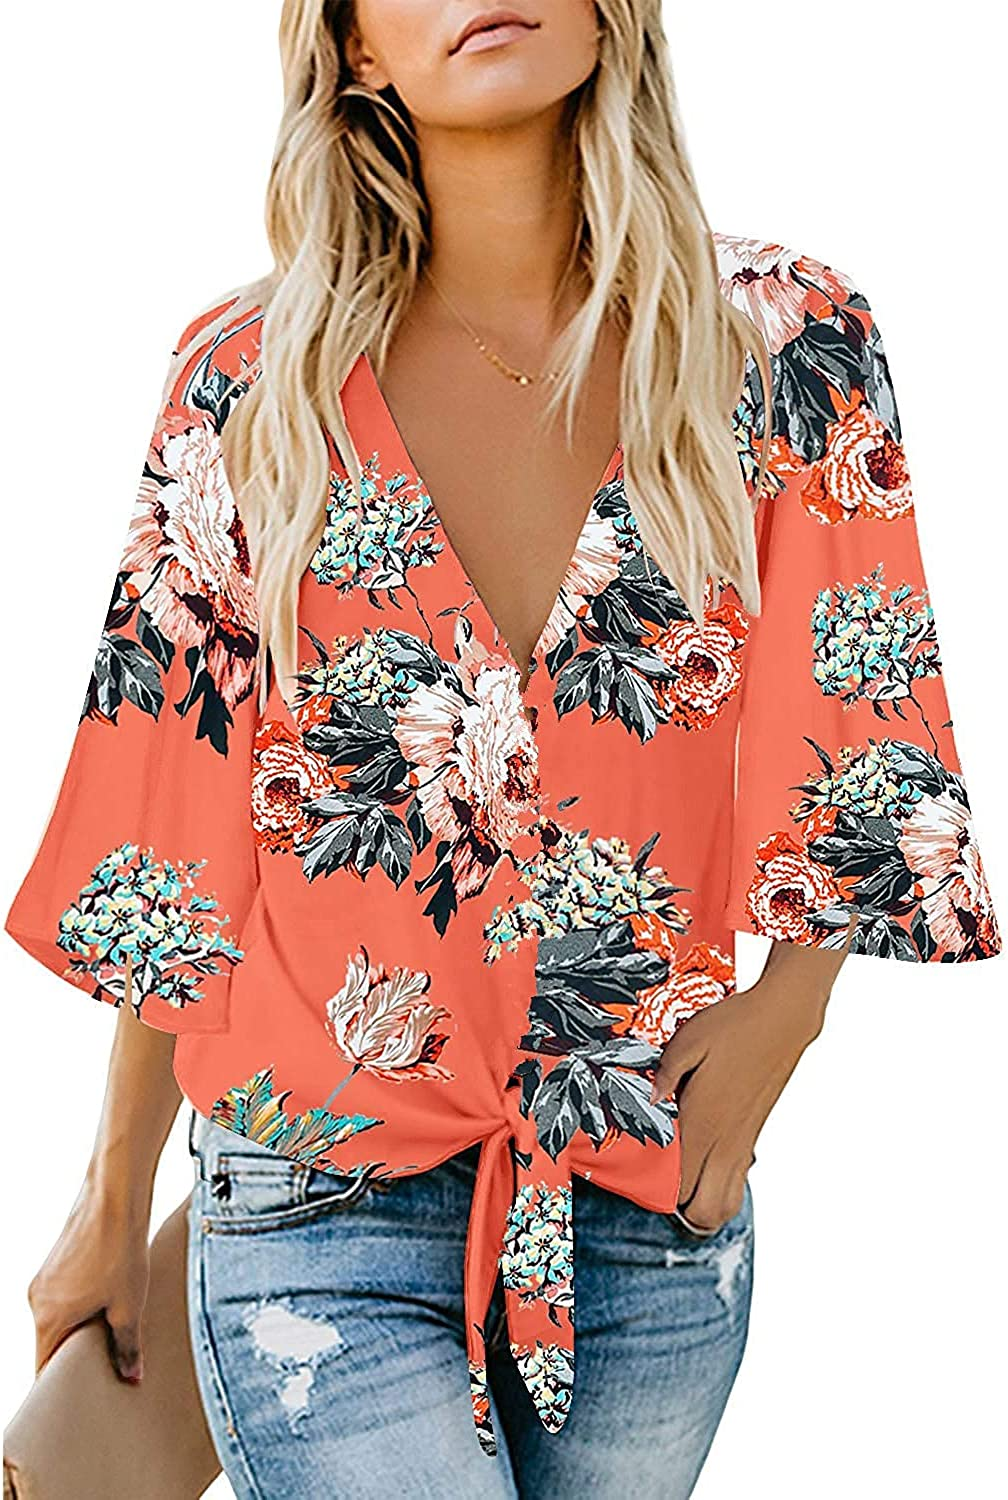 Women's Casual Floral Blouse Batwing Sleeve Loose Fitting Shirts Boho Knot Front Tops